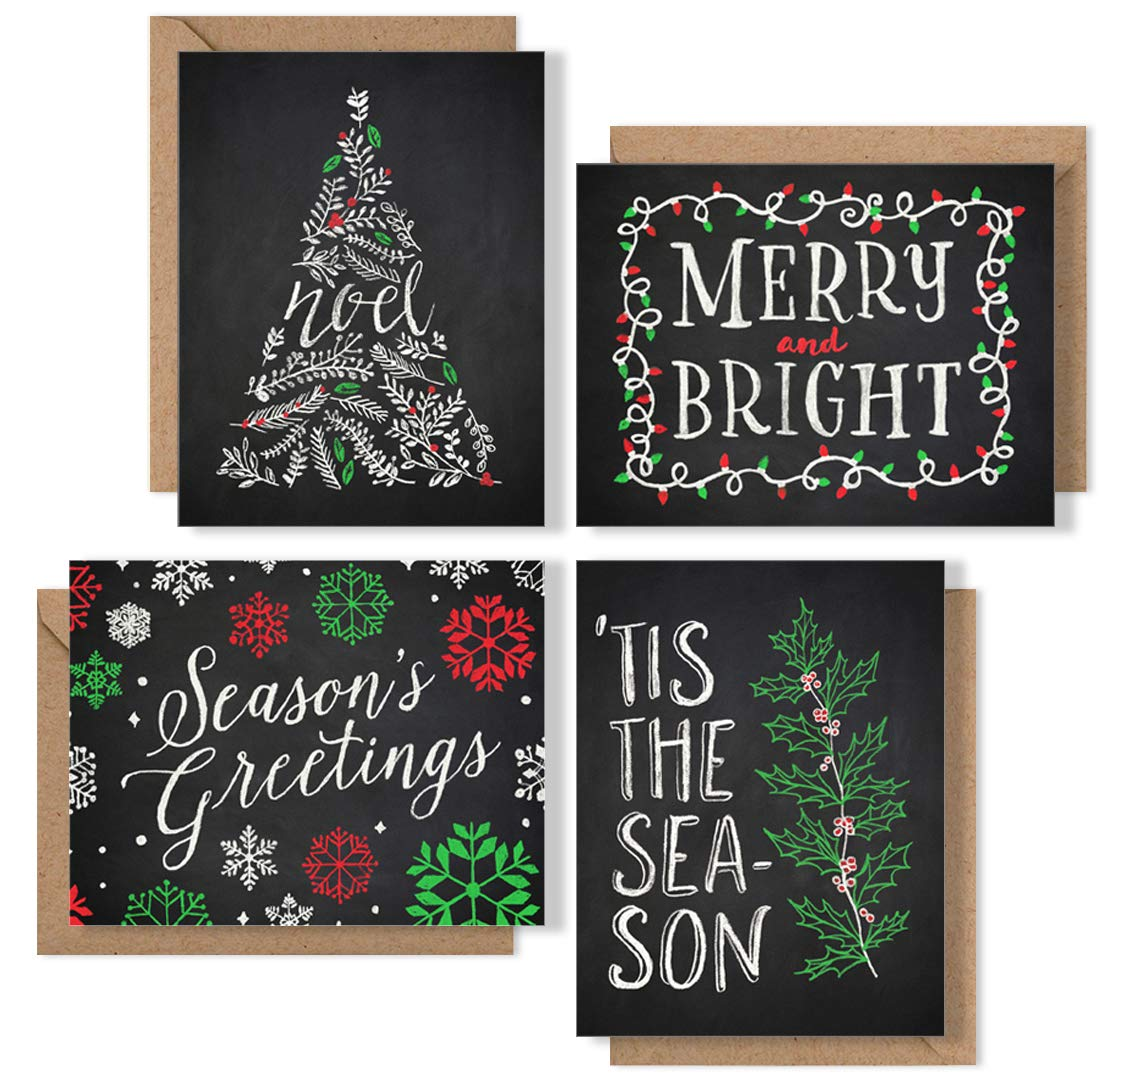 Christmas Cards Boxed Set: Chalk Art Holiday Card Pack (Premium Christmas Card Box Set + Kraft Envelopes) - 4 Unique Assorted Chalkboard Designs - Proudly Made in the USA By Palmer Street Press (36)